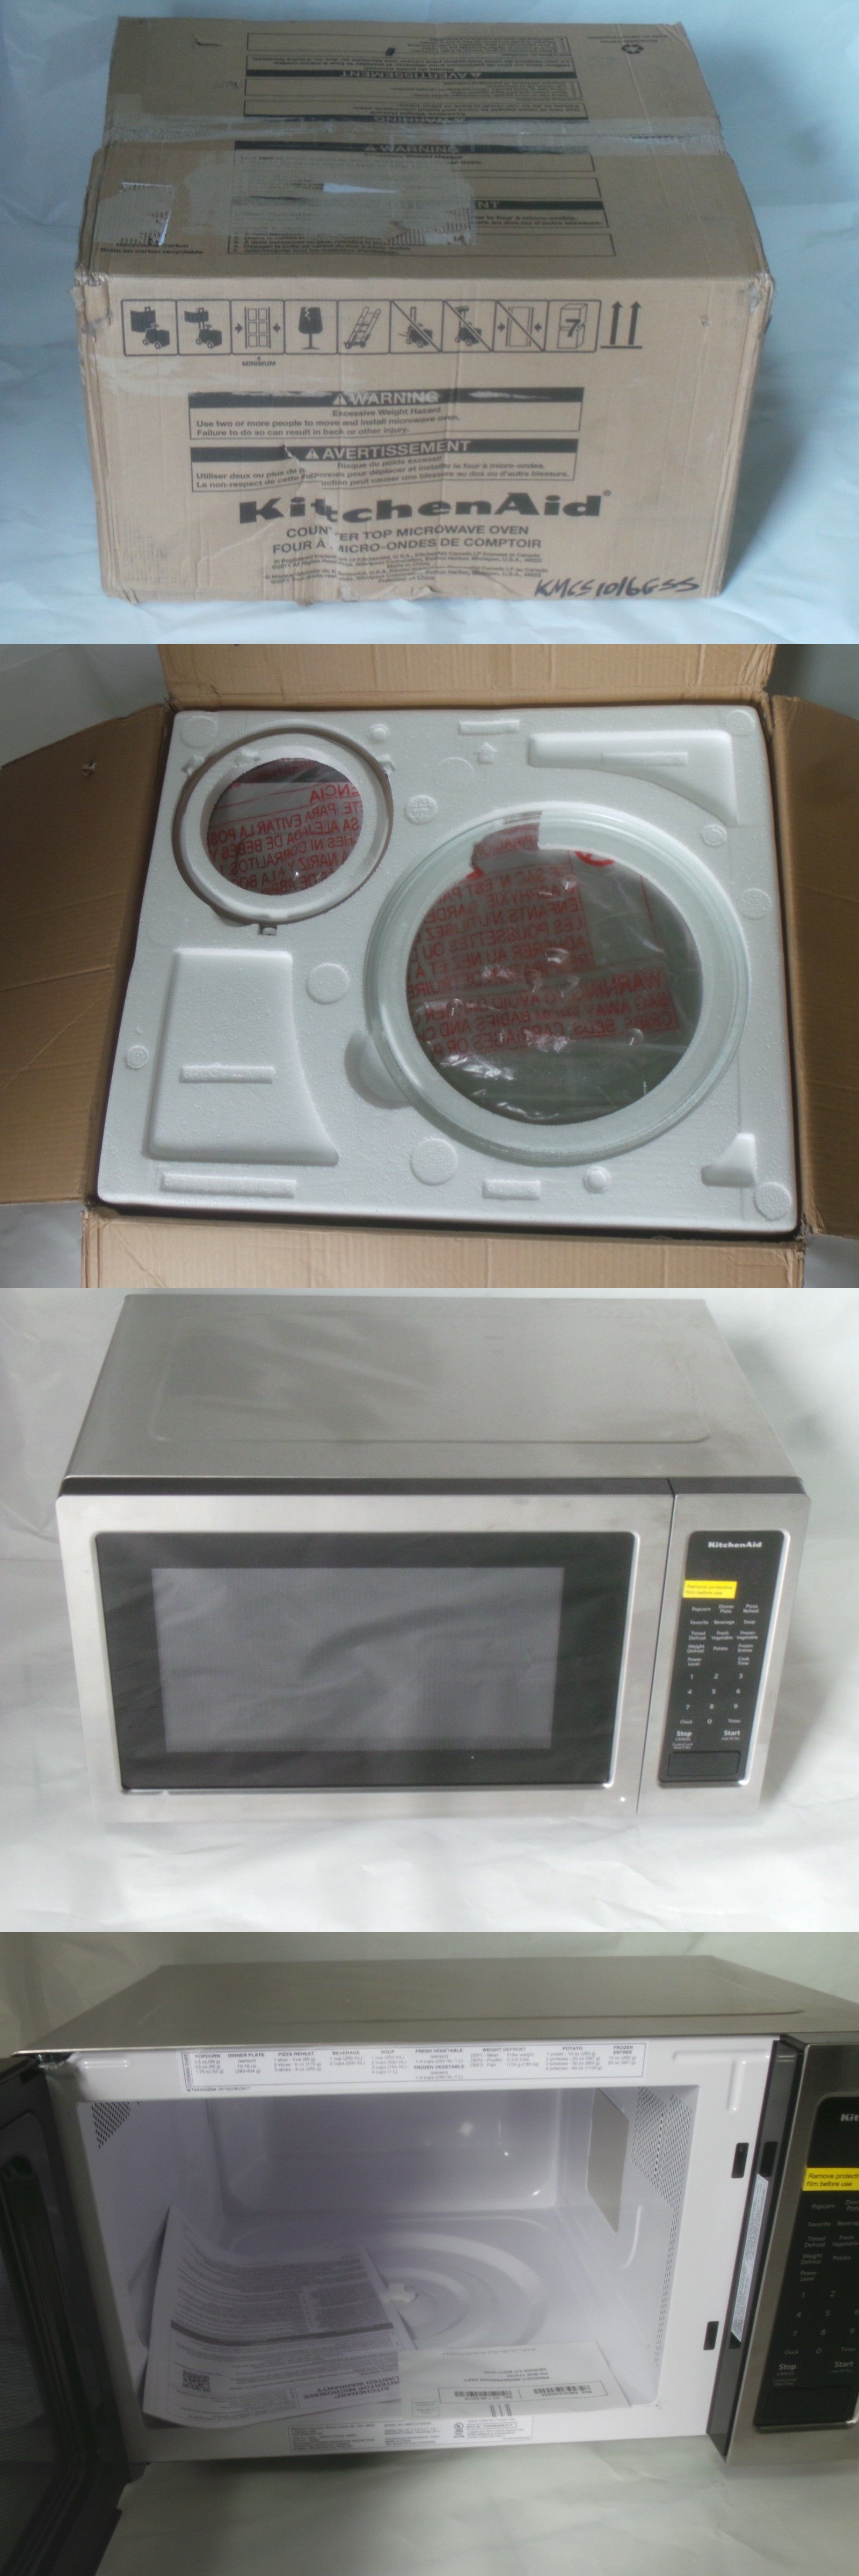 Microwave Ovens 150140 Kitchenaid Kmcs1016gss 1 6 Cf 1200w Stainless Steel Sensor Cooking Microwave Buy It No